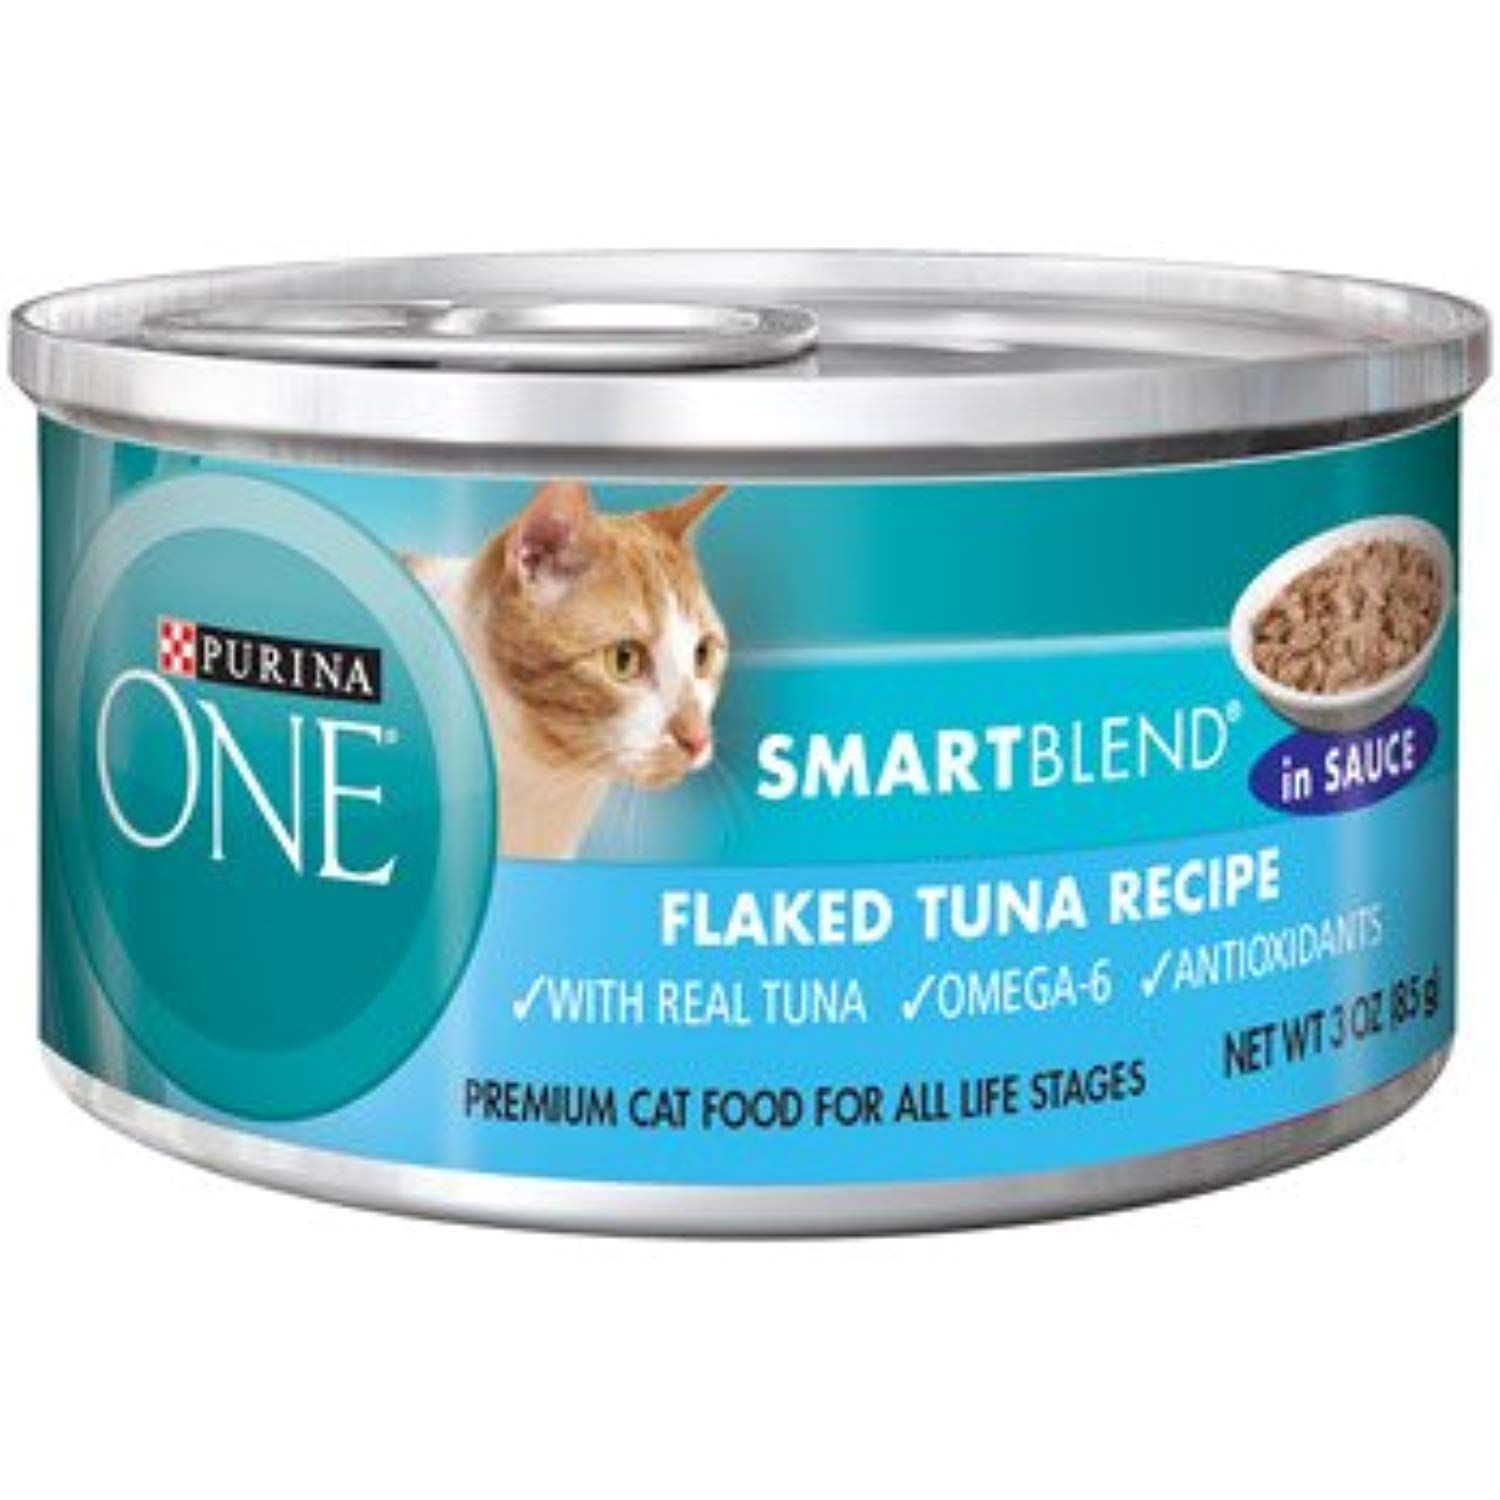 Purina ONE Smart Blend Flaked Tuna Braised in Sauce Canned